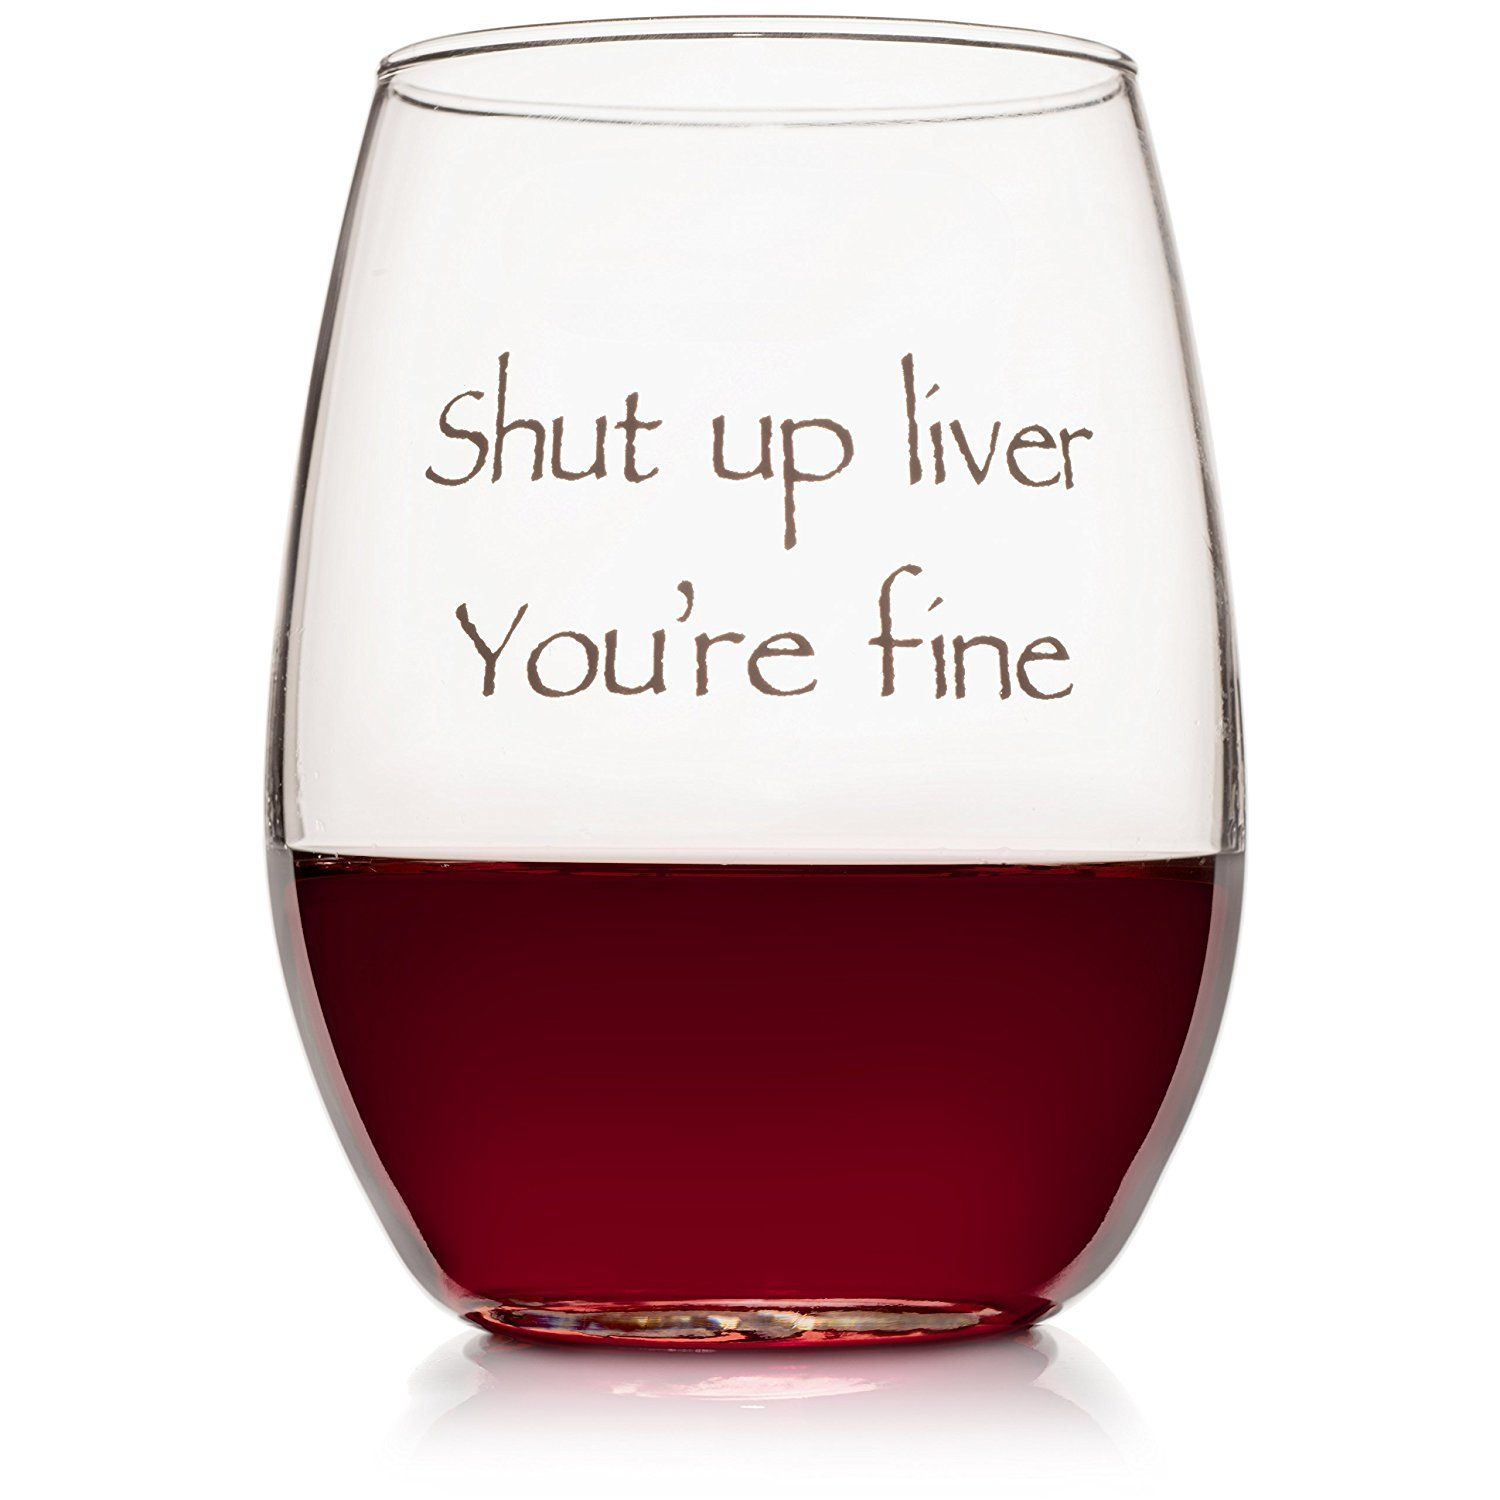 Funny Stemless Wine Glass Forget Every Worries When You Are In Mood Of Drinking Some Wine In This F Funny Wine Glass Unique Wine Glasses Wine Glass Sayings